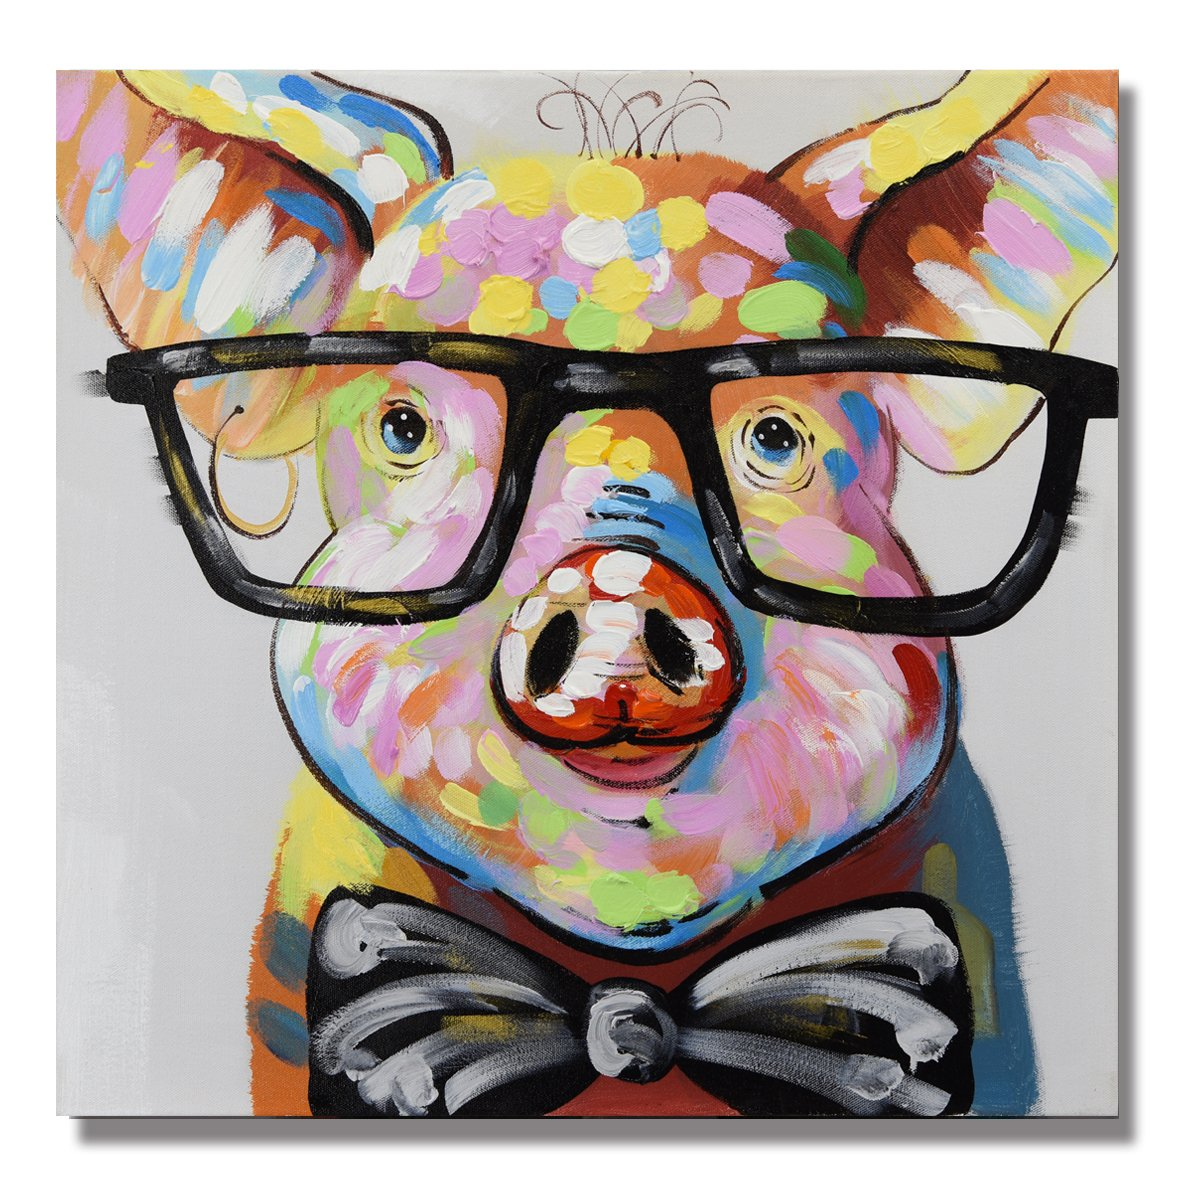 7CANVAS 100% Hand Painted Oil Painting Animal Smart Pig with Stretched Frame Wall Art for Home Decor Ready to Hang (Pig,24x24) by 7CANVAS